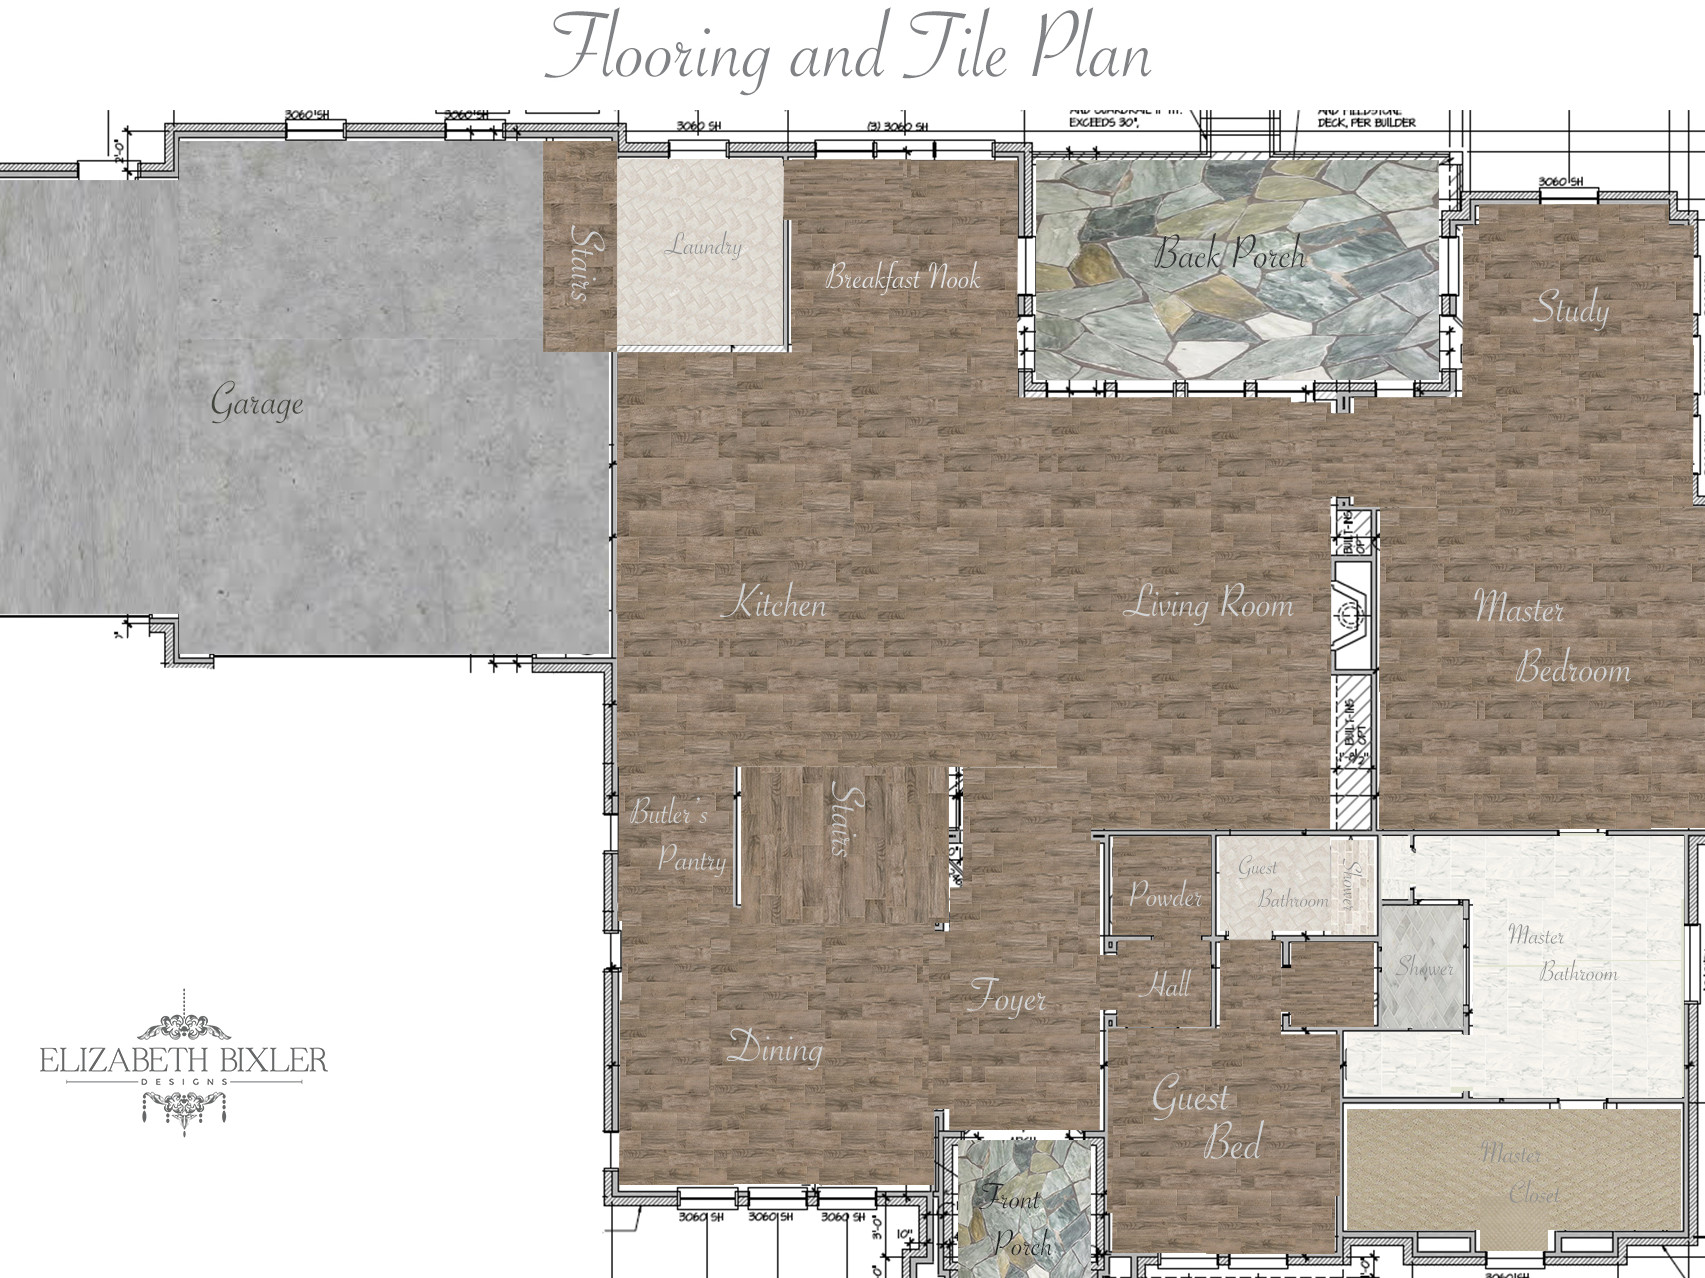 Diy photoshop your floor plan elizabeth bixler designs for Tile floor layout tool